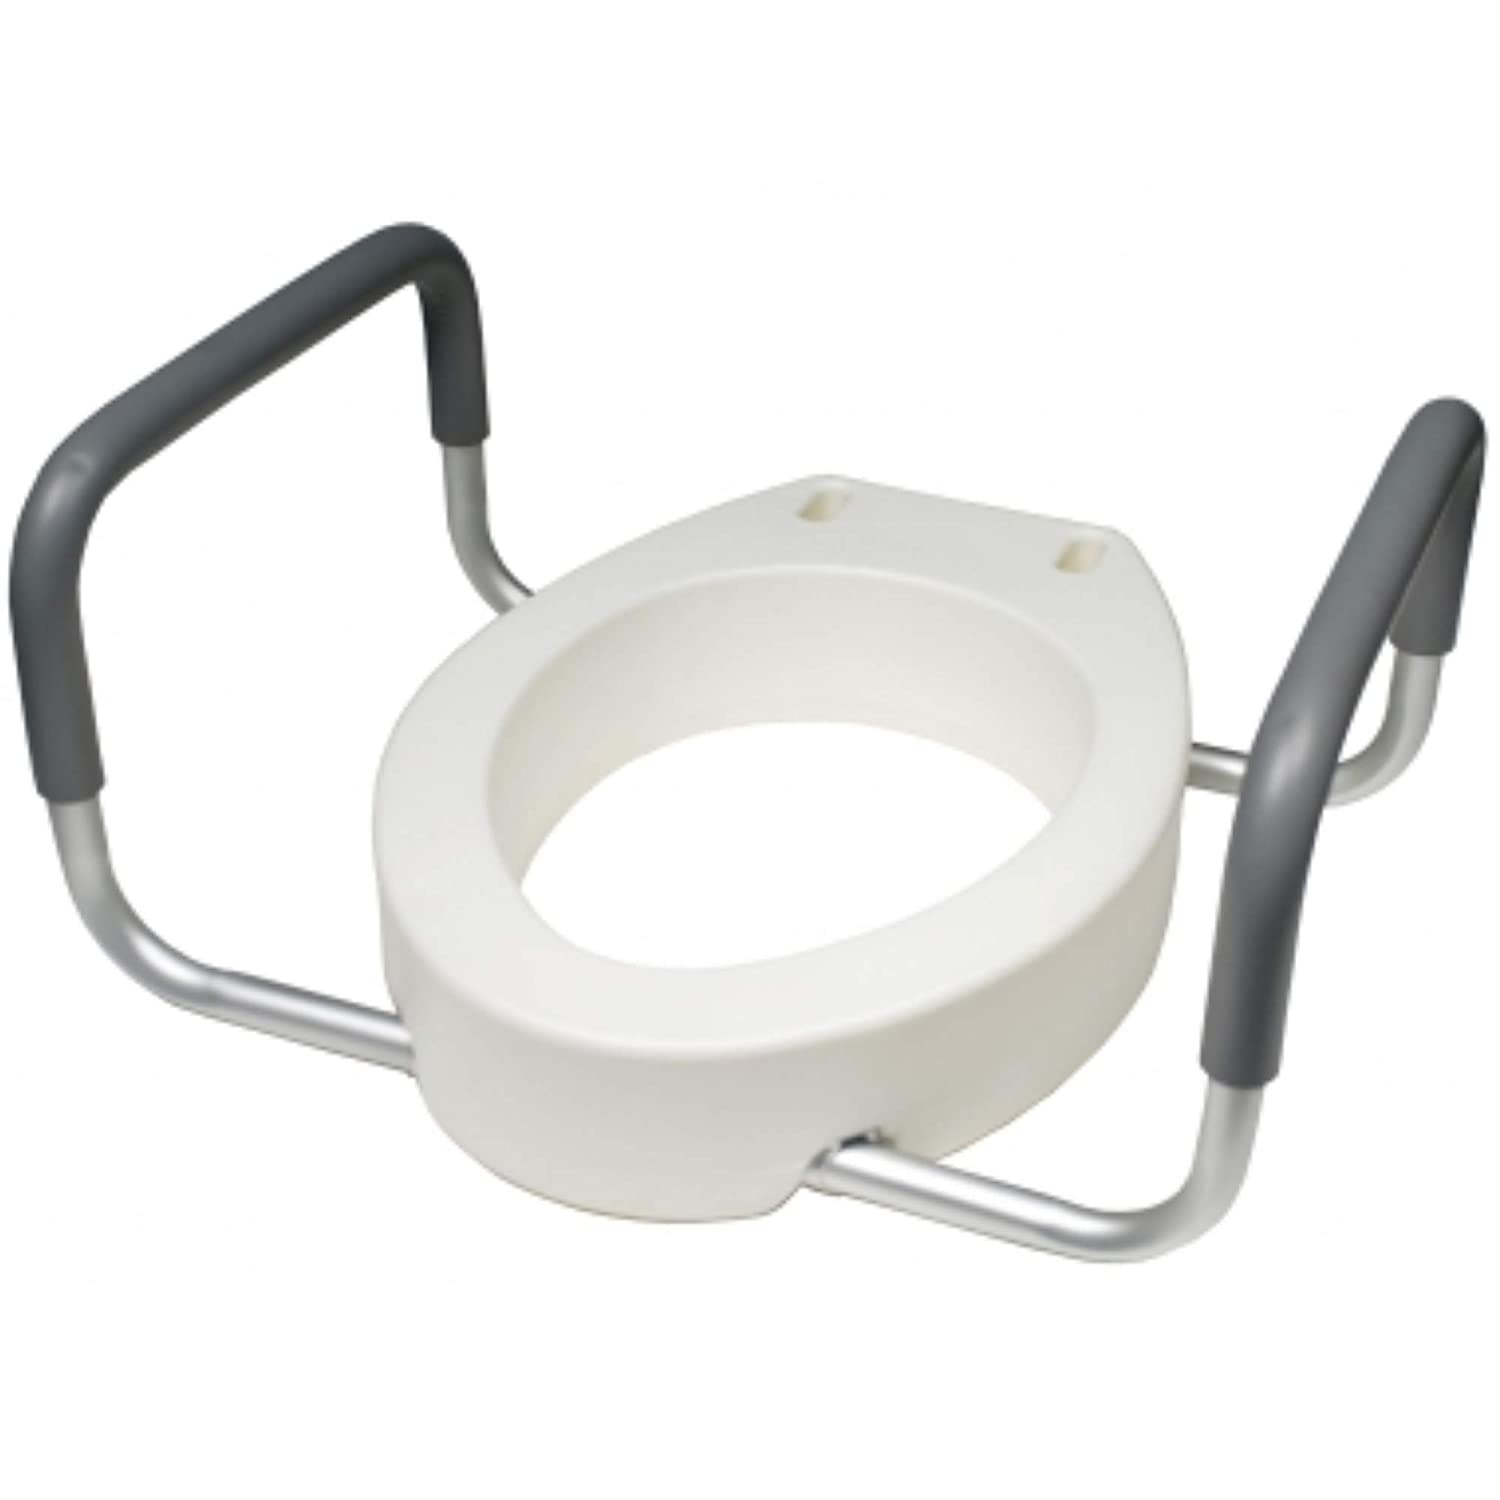 Toilet Seat Riser With Arms.Amazon Com Pivit Toilet Seat Riser With Handles Raised